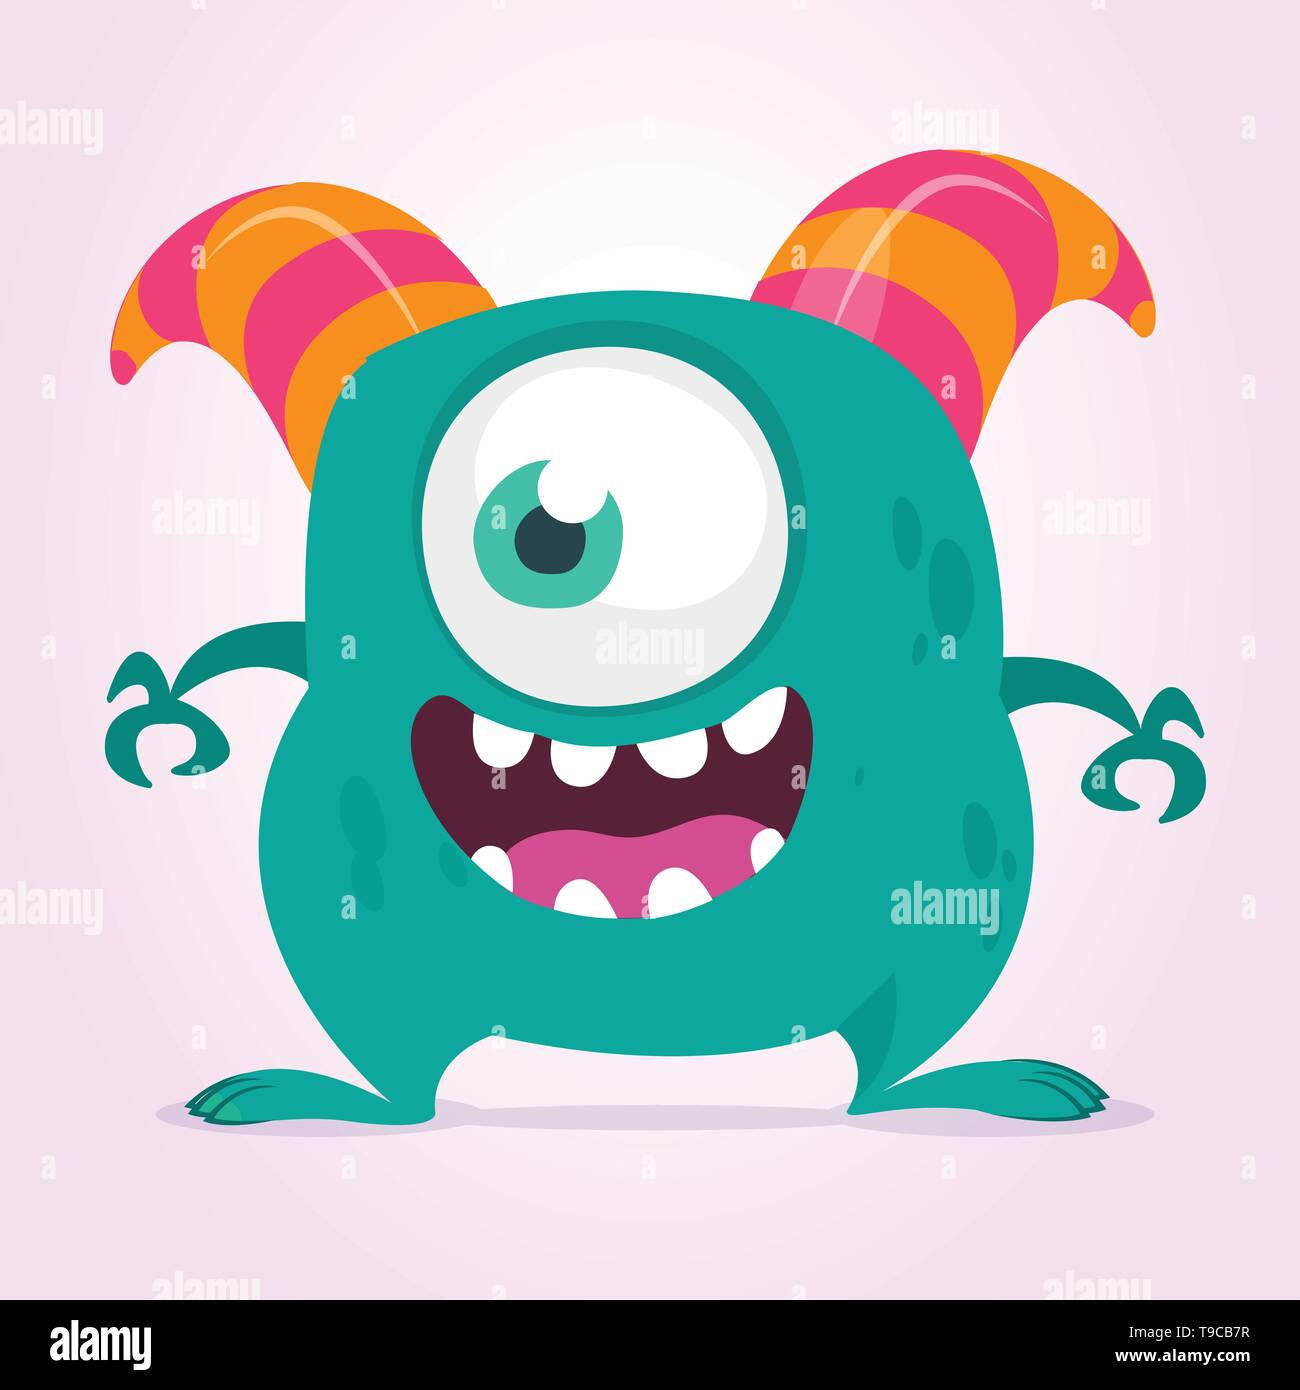 Cute cartoon monster  with horns with one eye. Smiling monster emotion with big mouth. Halloween vector illustration - Stock Image